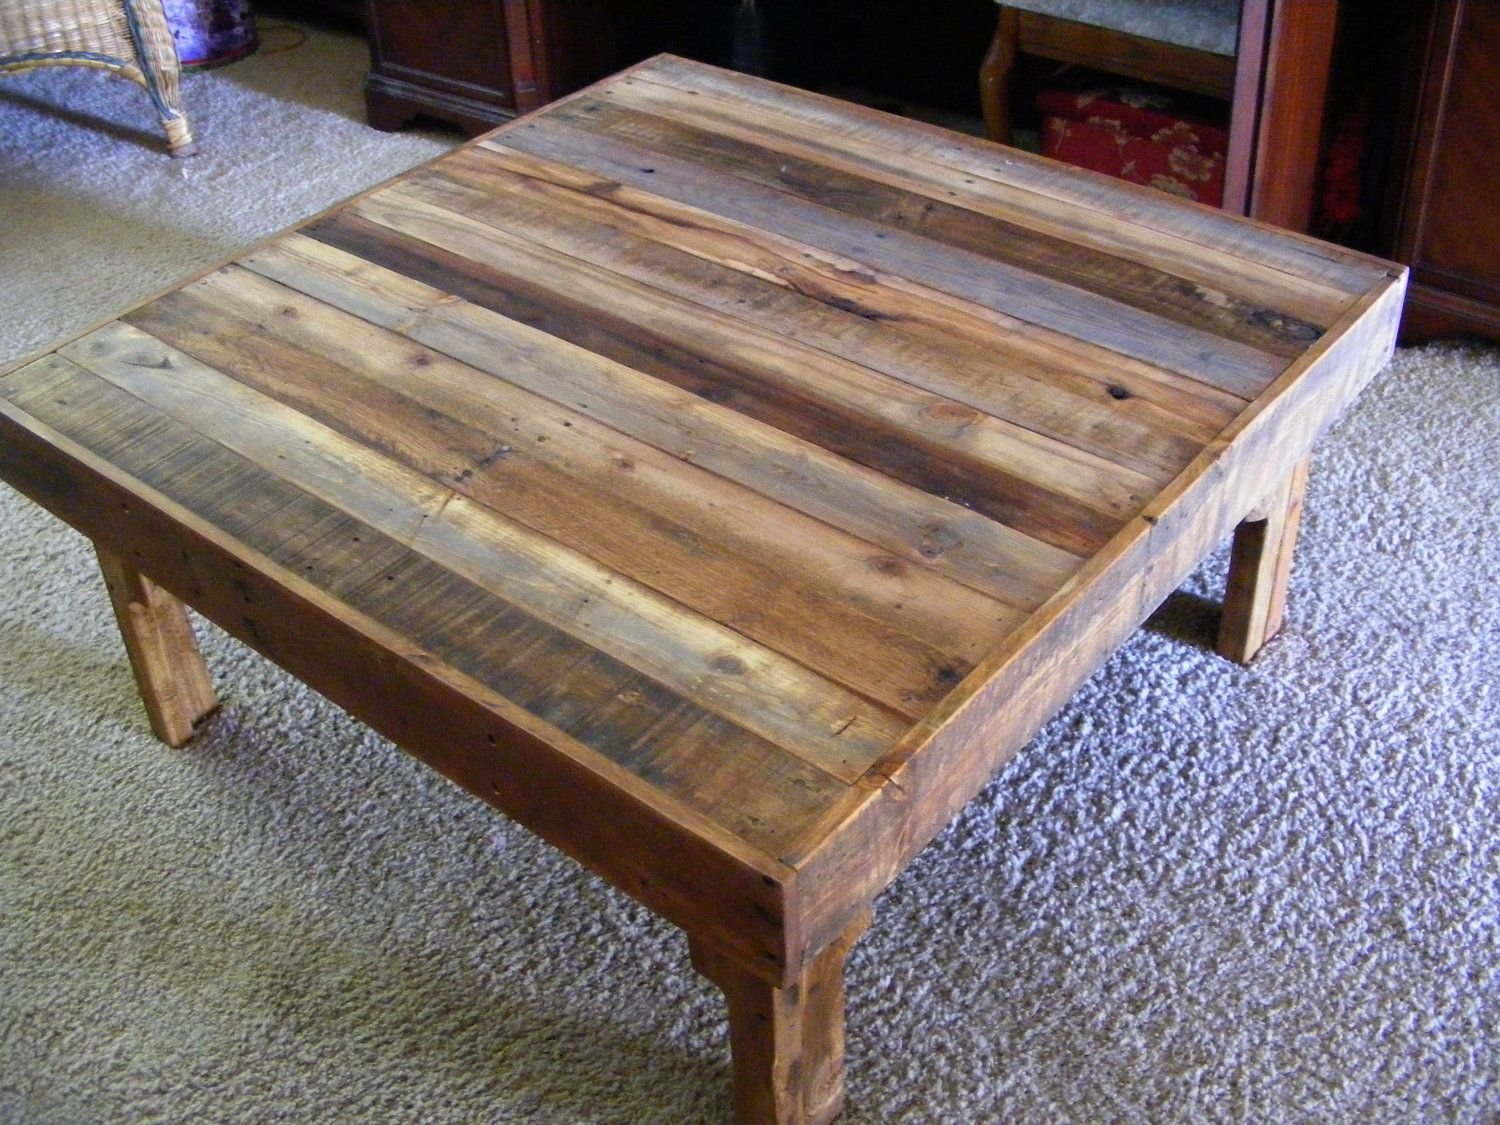 Reserved order for megan large square rustic reclaimed wood coffee table with shelf 35 x 35 x Rustic wooden coffee tables